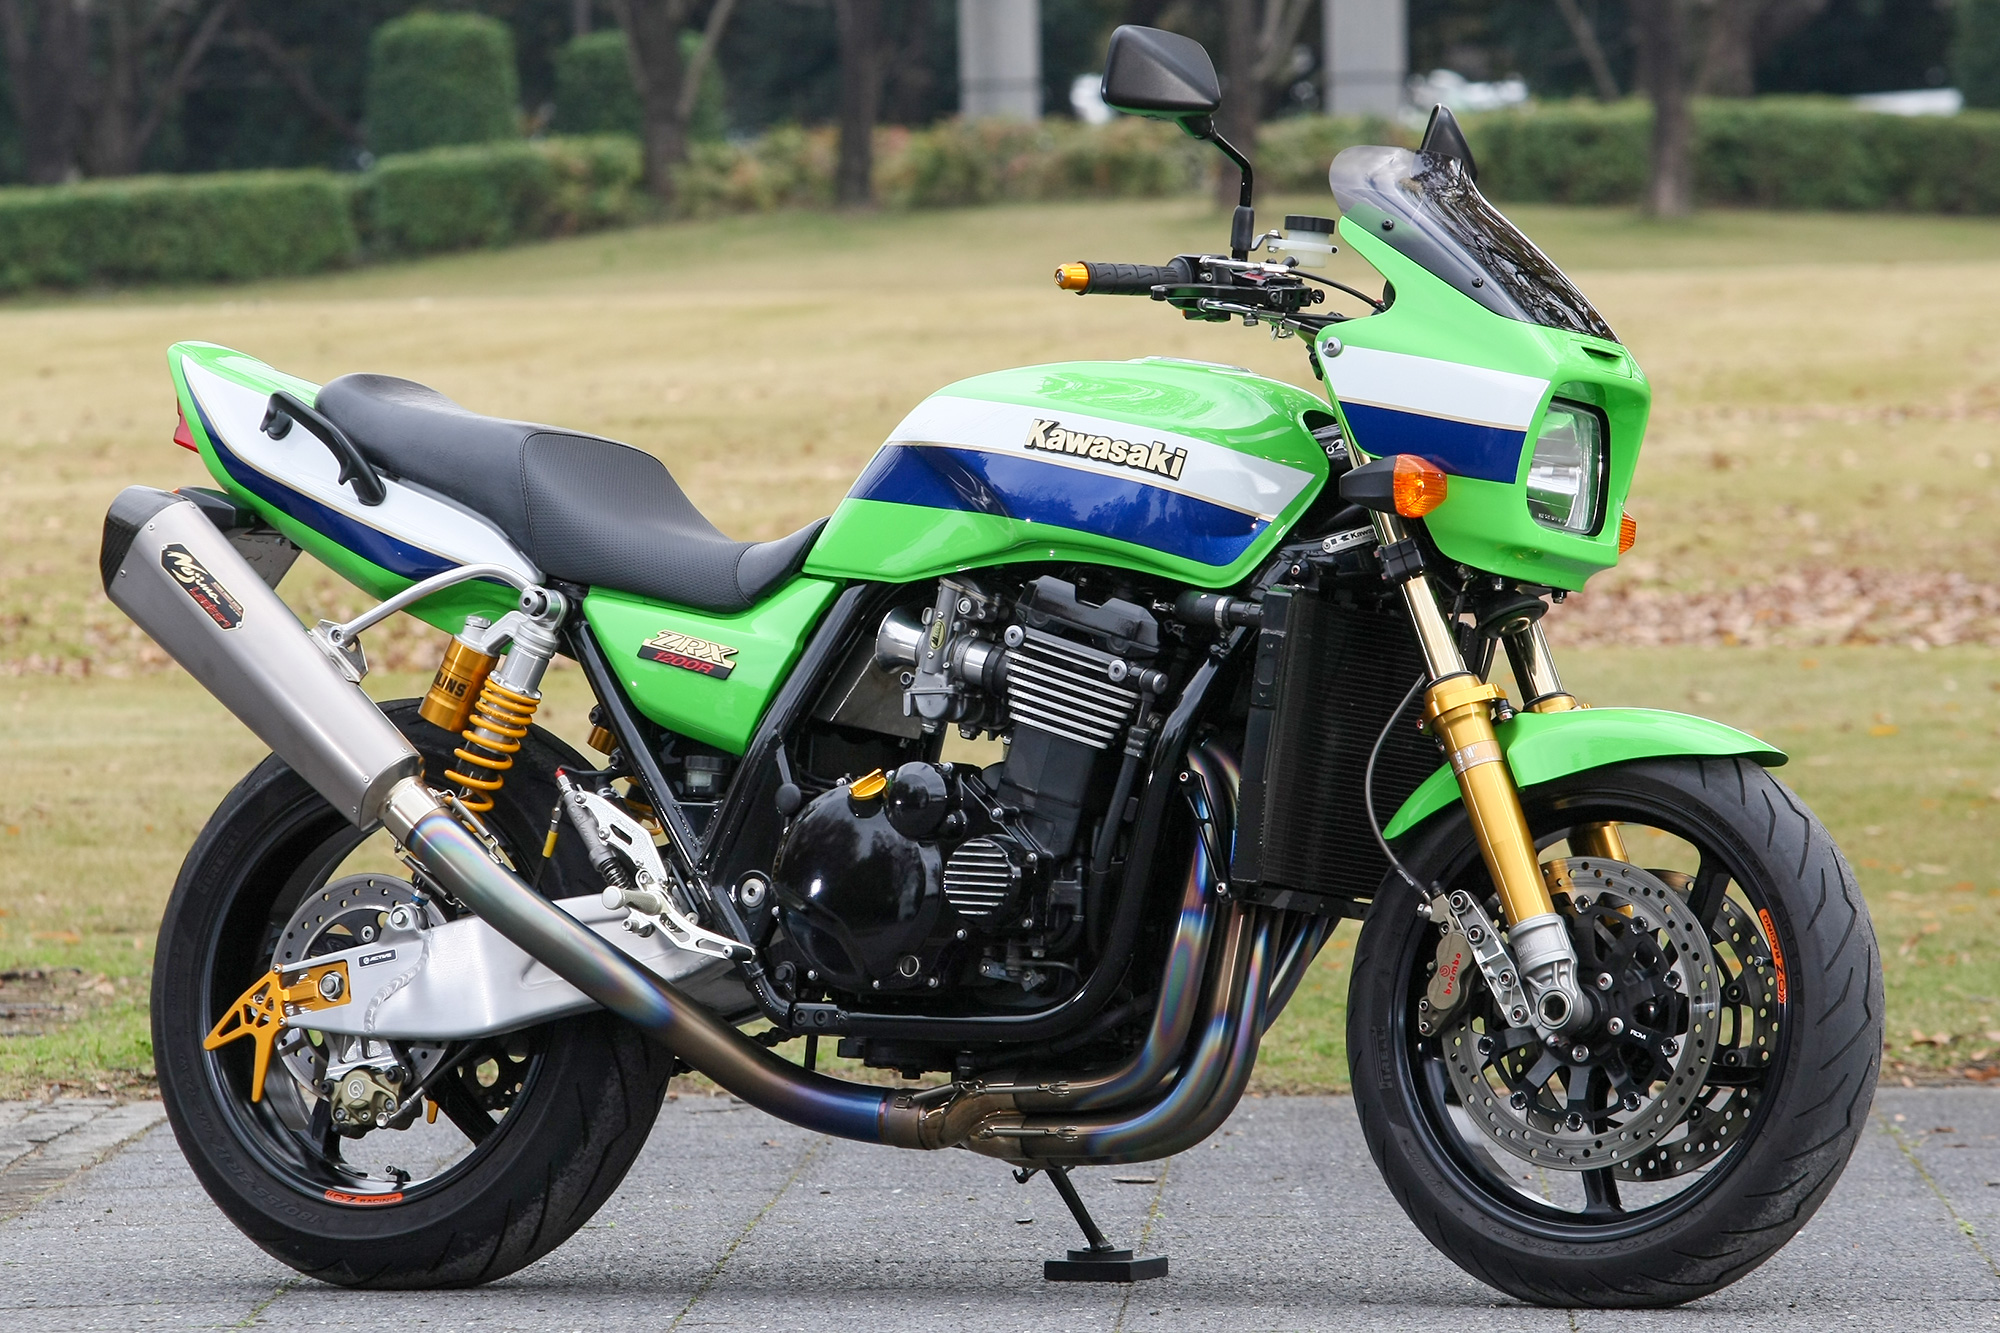 ZRX1200R by パワービルダー